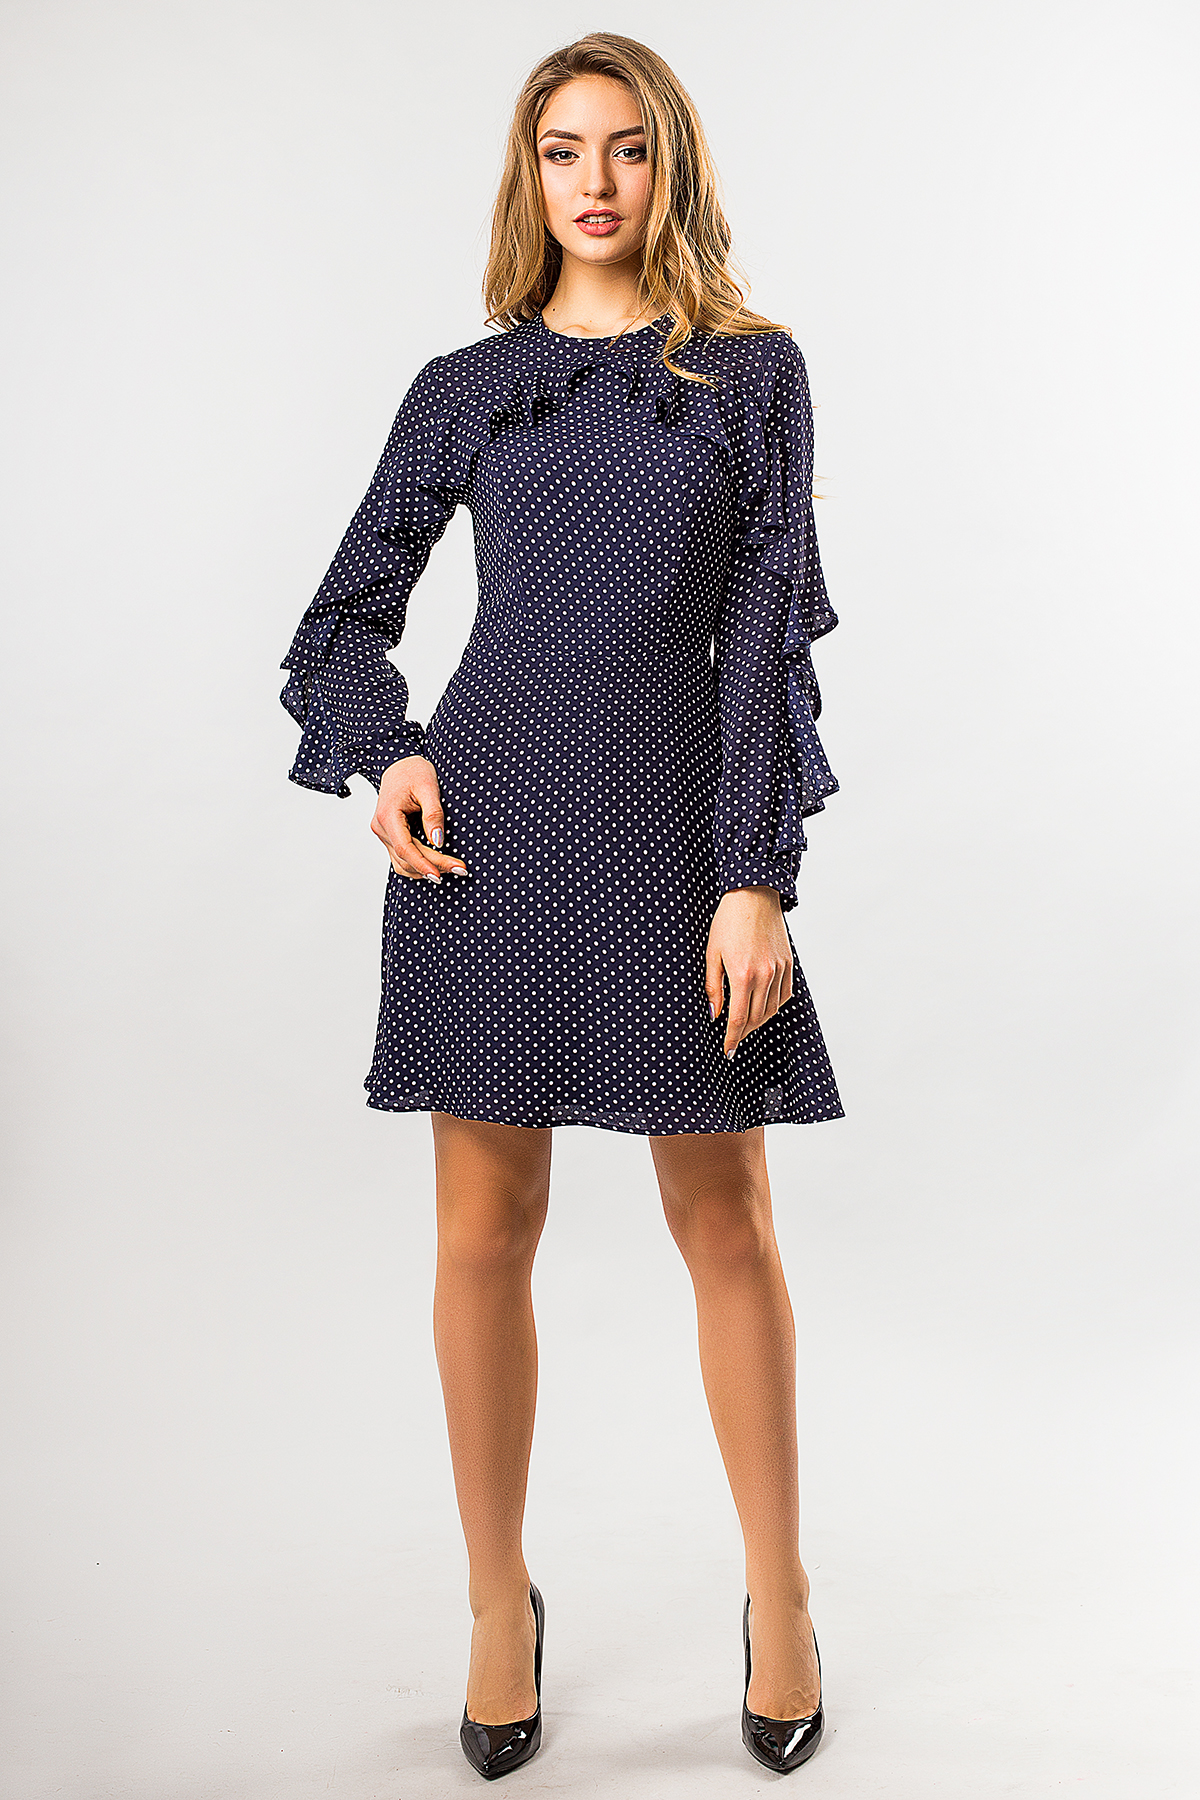 chiffon-dress-dot-dark-blue